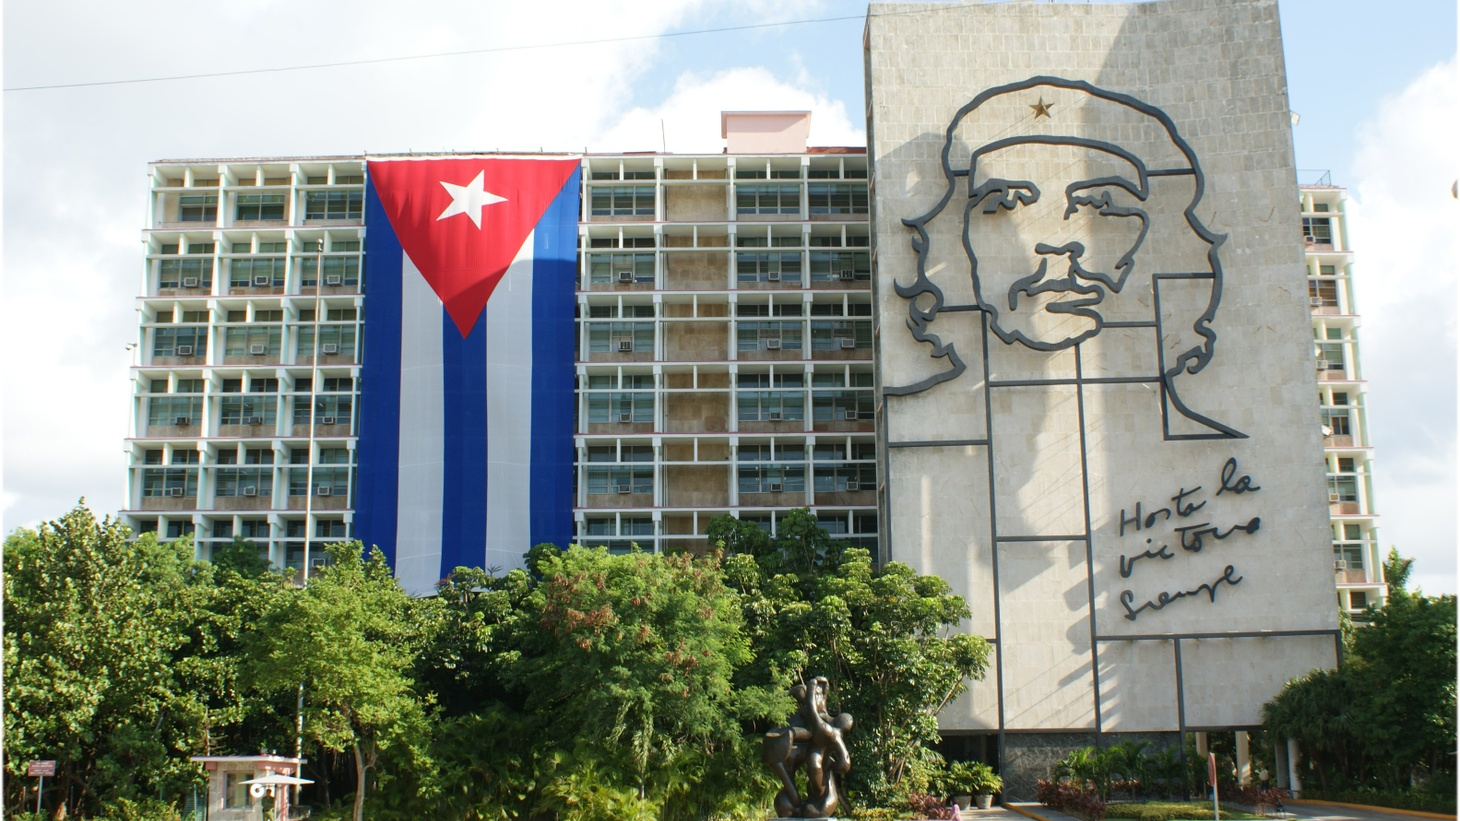 The Obama administration announced a historic agreement with Cuba today, re-establishing diplomatic relations after decades of alienation. What are the details of the deal? We also take a look at a bizarre plot by the federal government agency USAID to infiltrate Cuba's underground hip-hop scene.